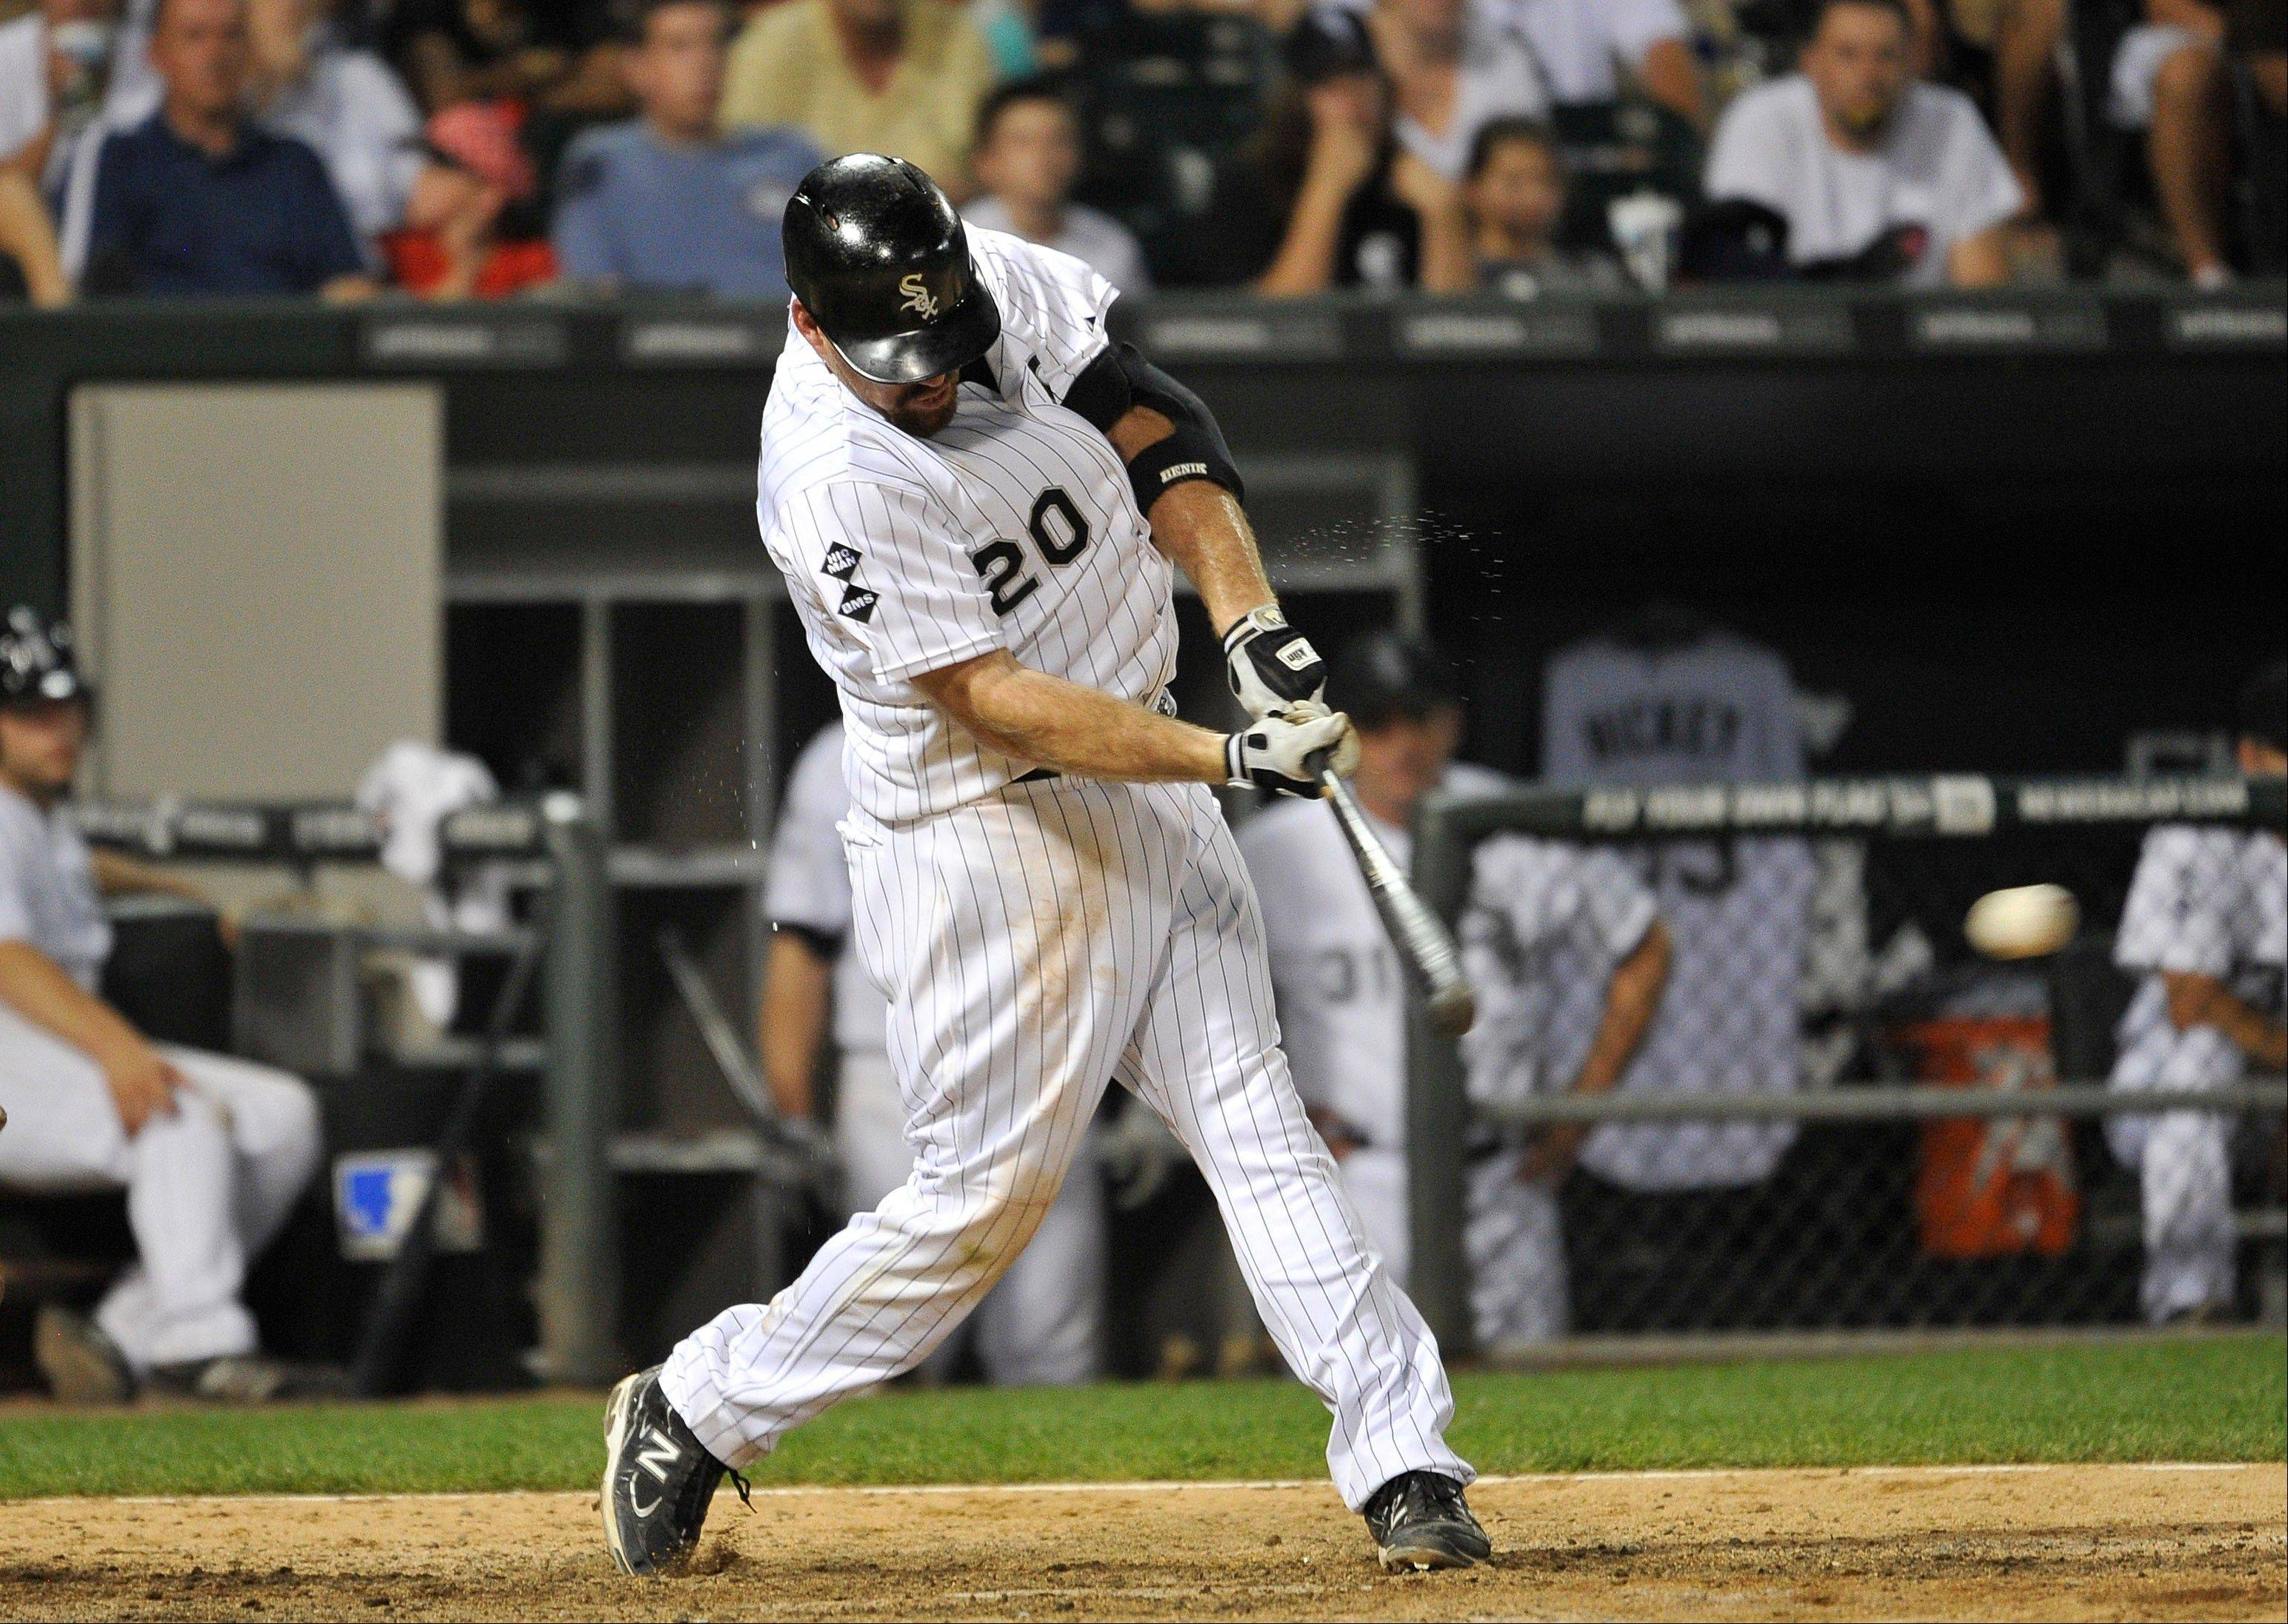 White Sox third baseman Kevin Youkilis connects on a game-winning RBI-single, scoring Alejandro De Aza, during the 10th inning of a baseball game against the Texas Rangers, Wednesday, July 4, 2012, in Chicago.